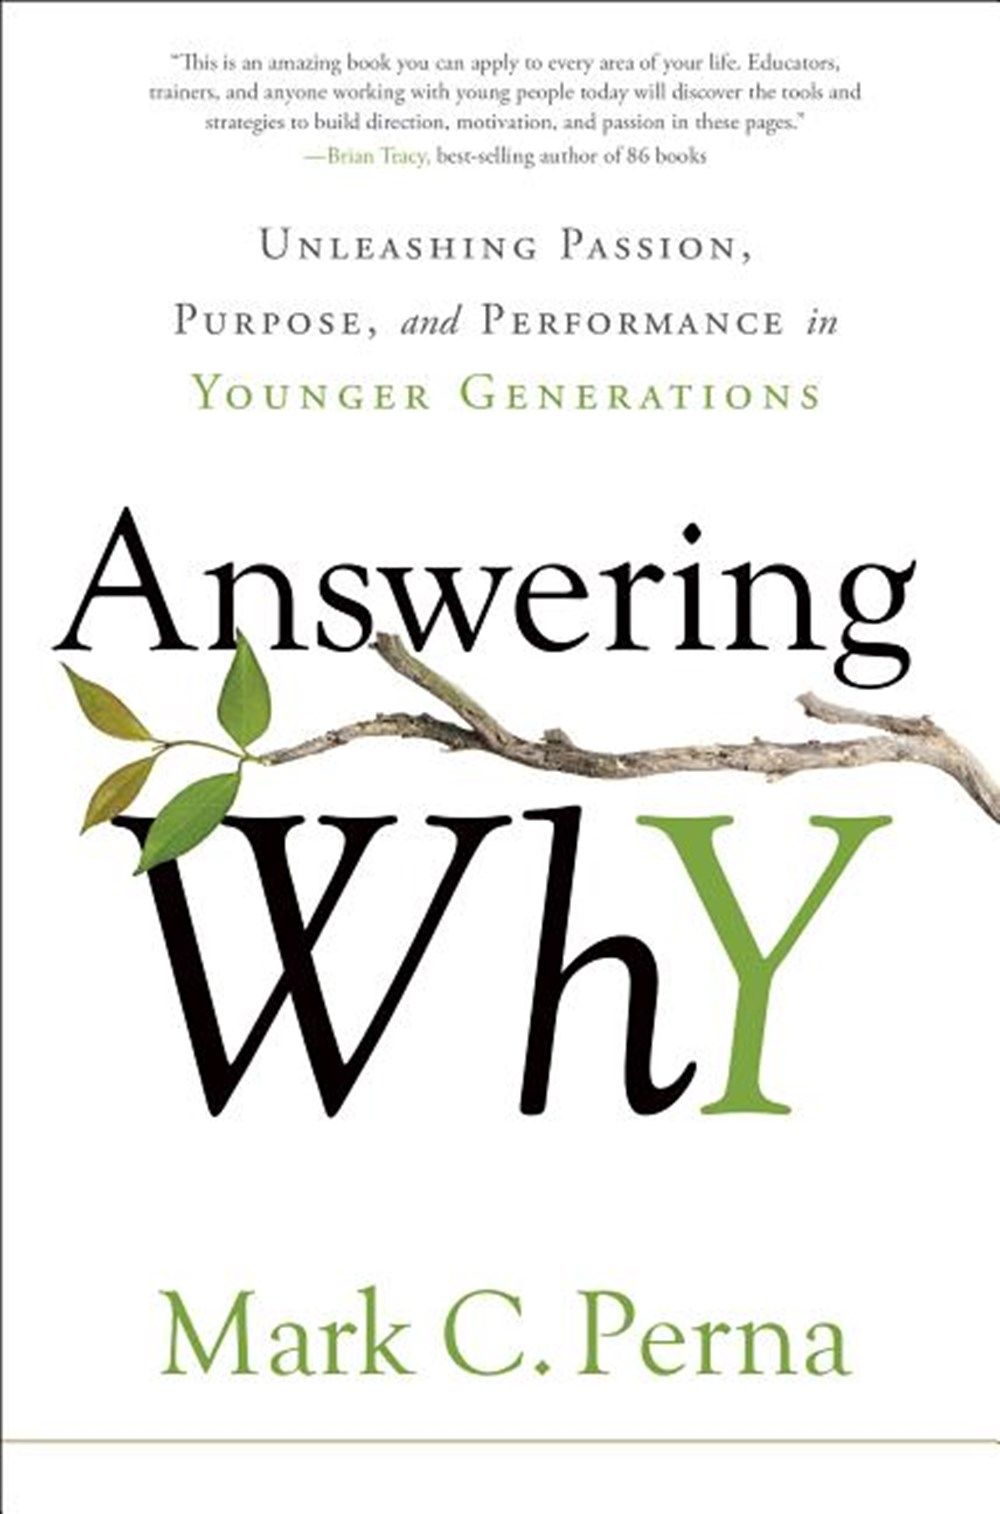 Answering Why Unleashing Passion, Purpose, and Performance in Younger Generations